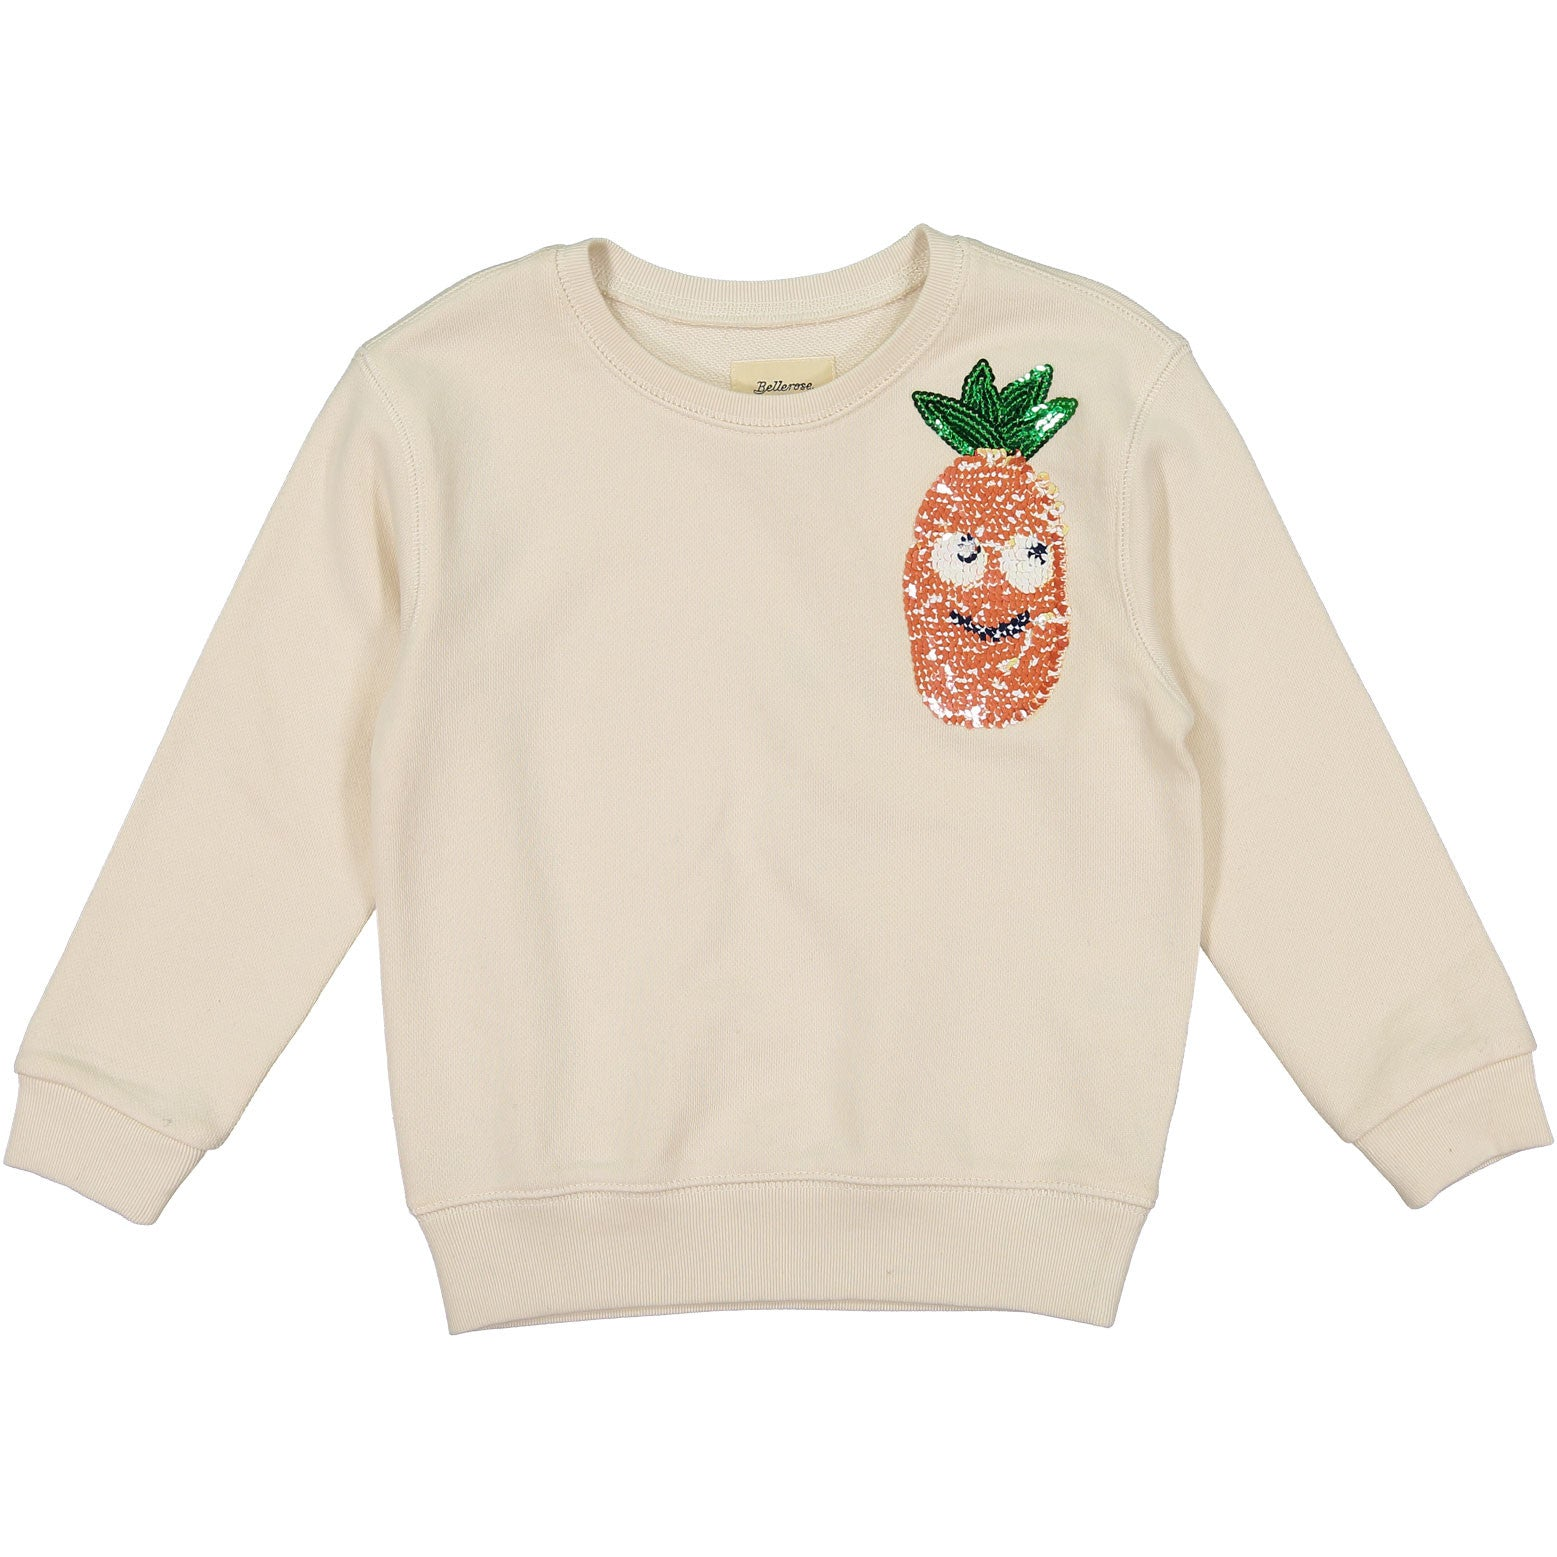 Bellerose Cream Pineapple Sweatshirt - Ladida